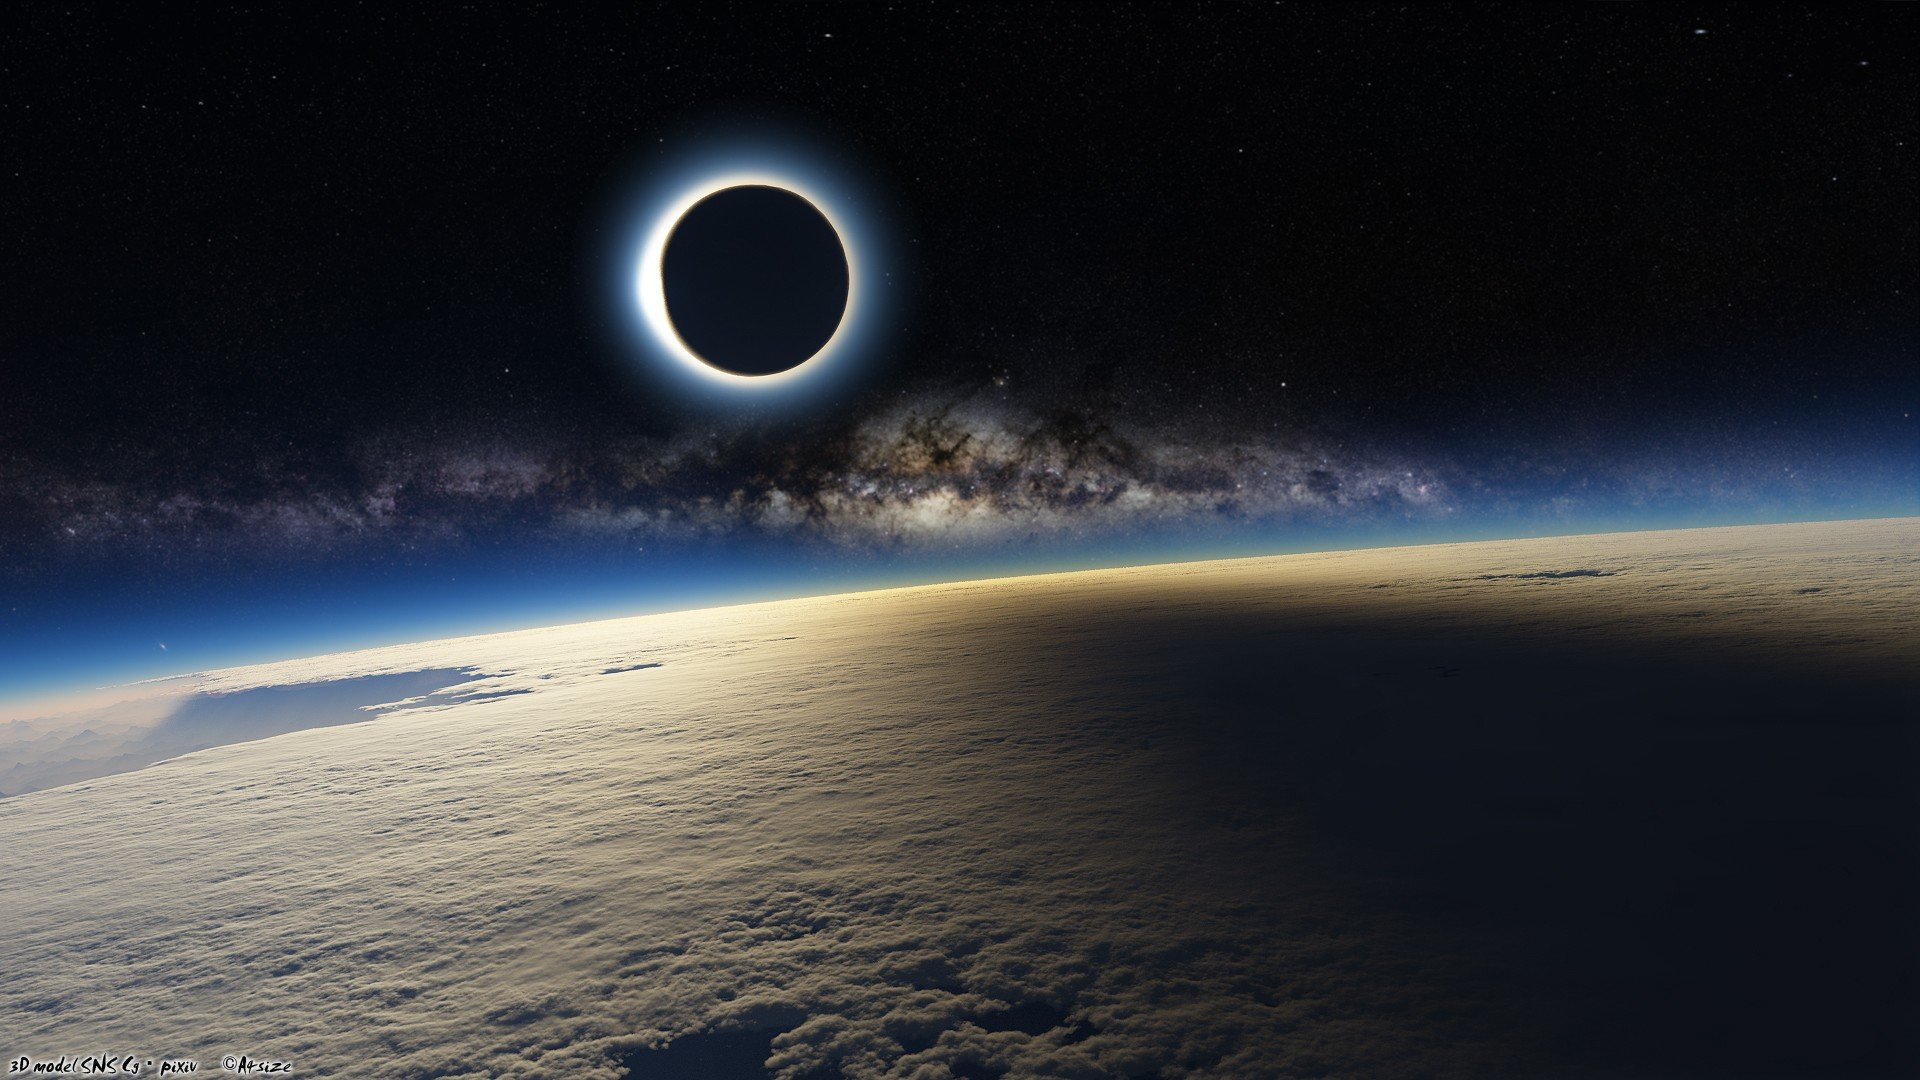 Sun Outer Space Stars Galaxies Moon Earth Eclipse Skyscapes Solar Eclipse